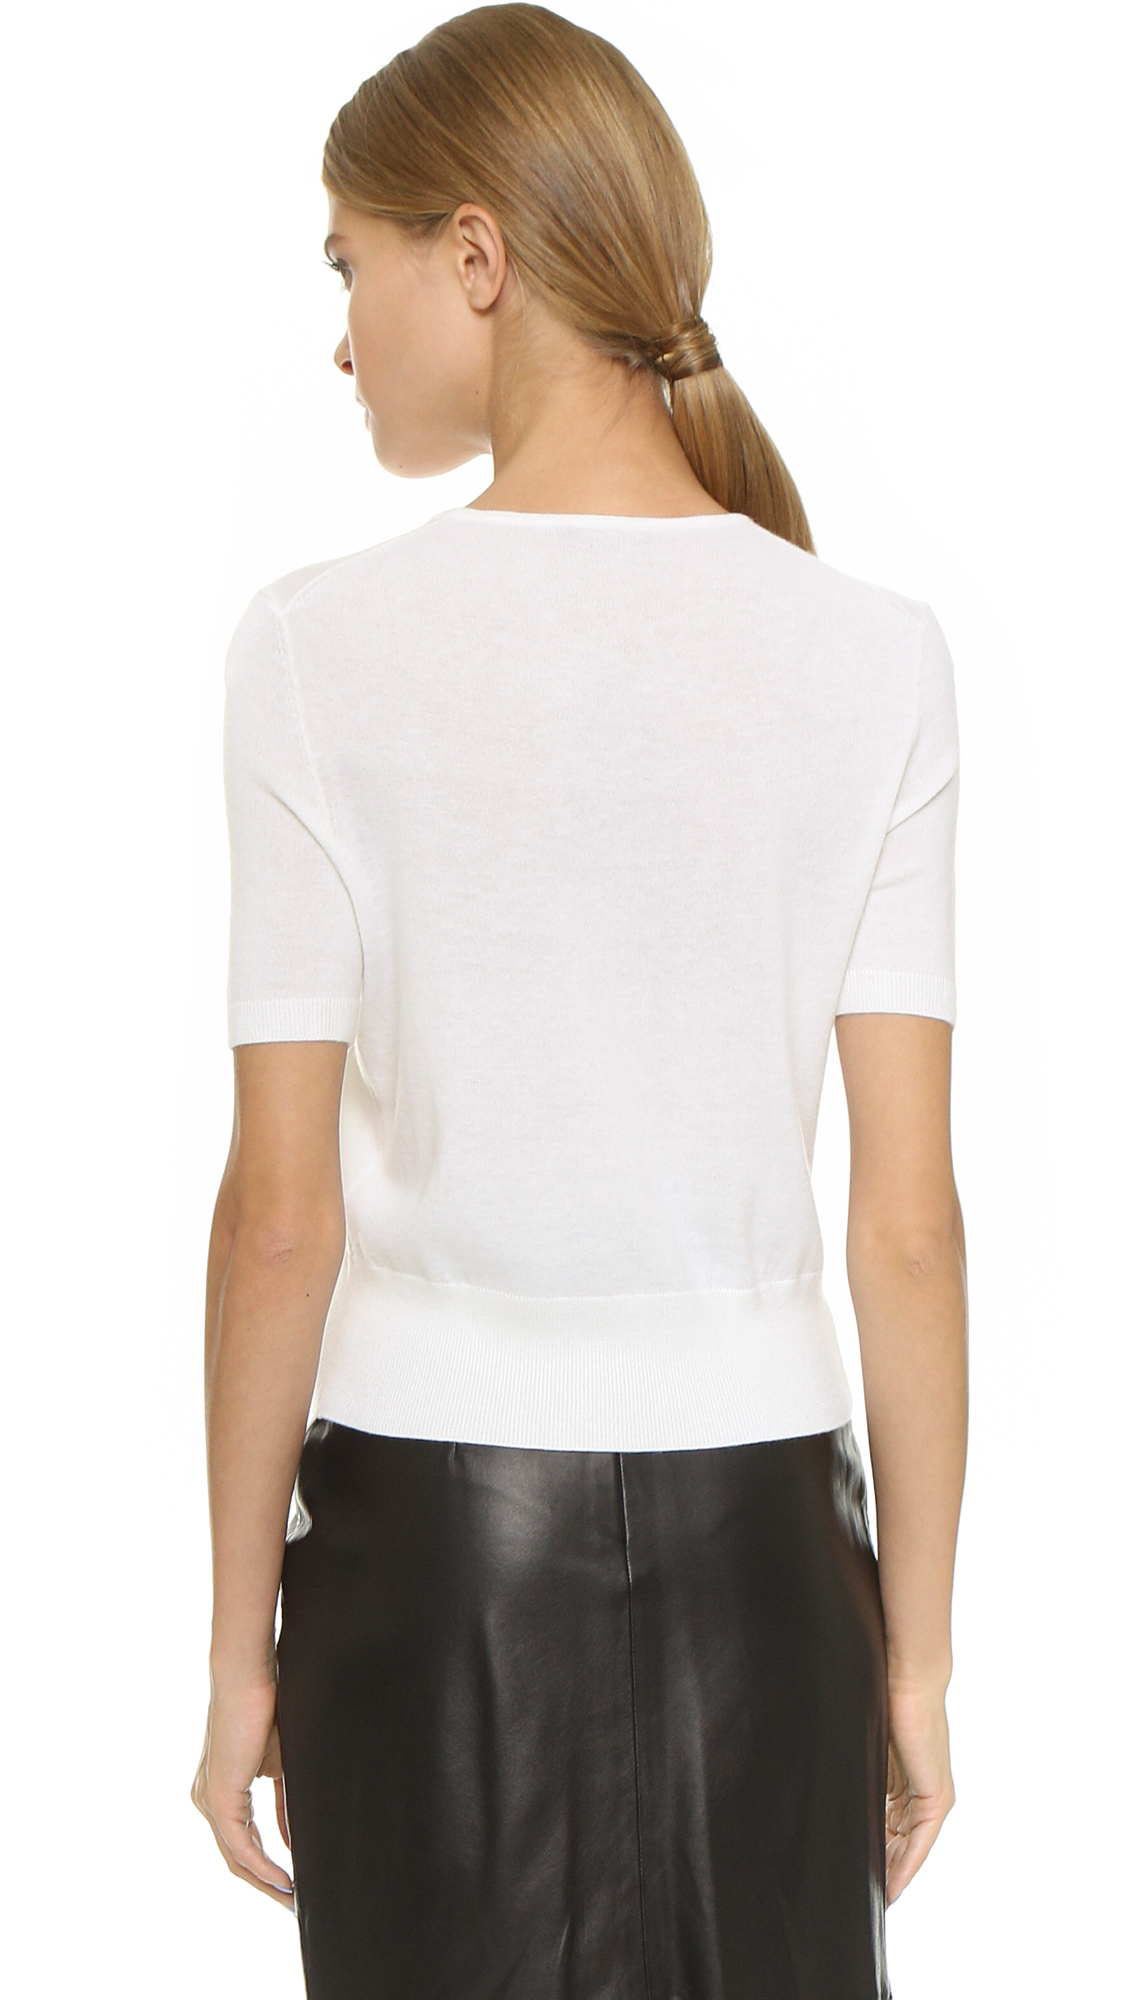 Tamara mellon Short Sleeve Cashmere Sweater - Cream in Natural | Lyst